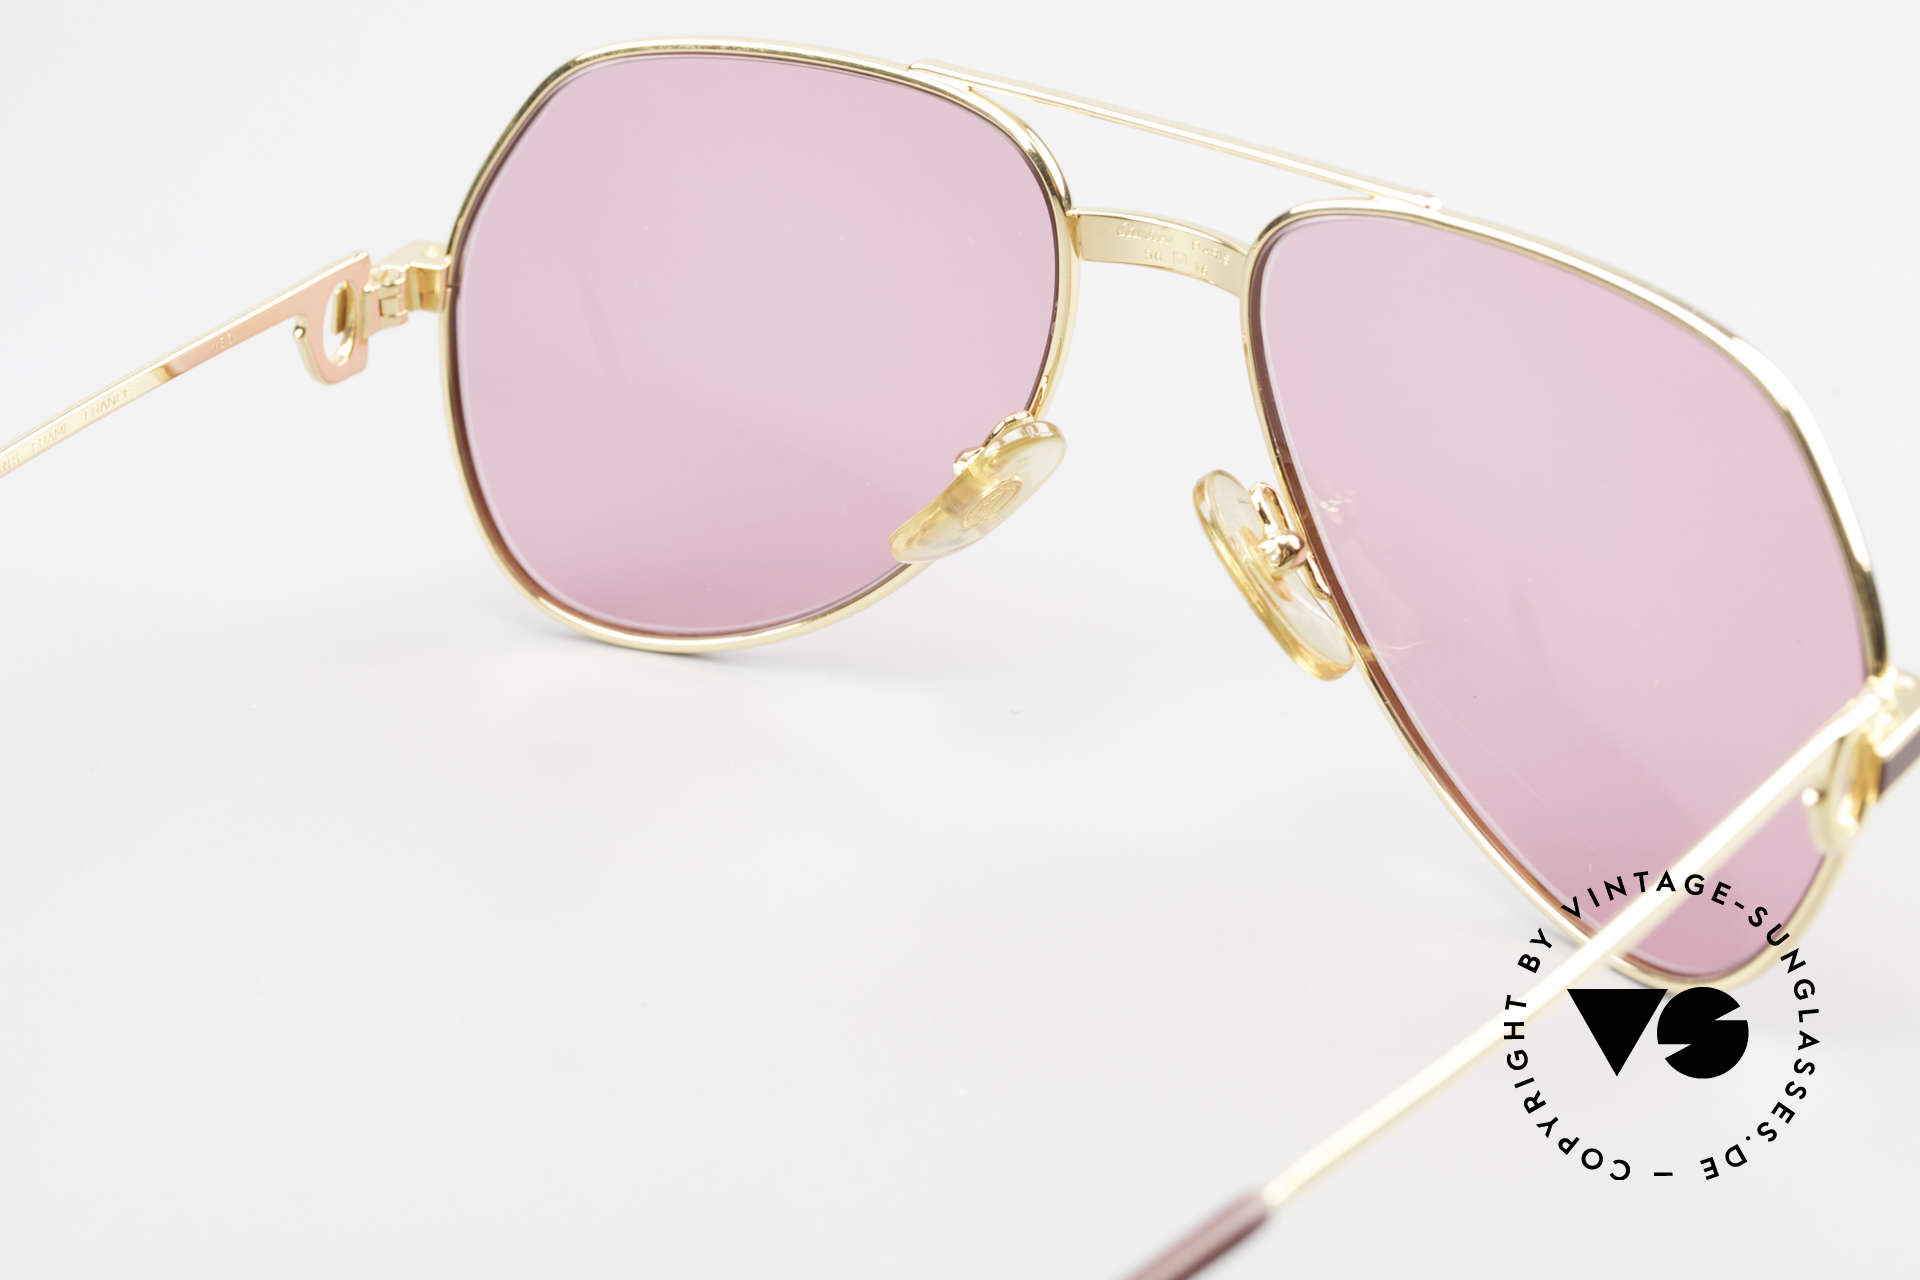 Cartier Vendome Laque - S 80's Luxury Sunglasses Pink, with new PINK sun lenses; unisex (100% UV protection), Made for Men and Women